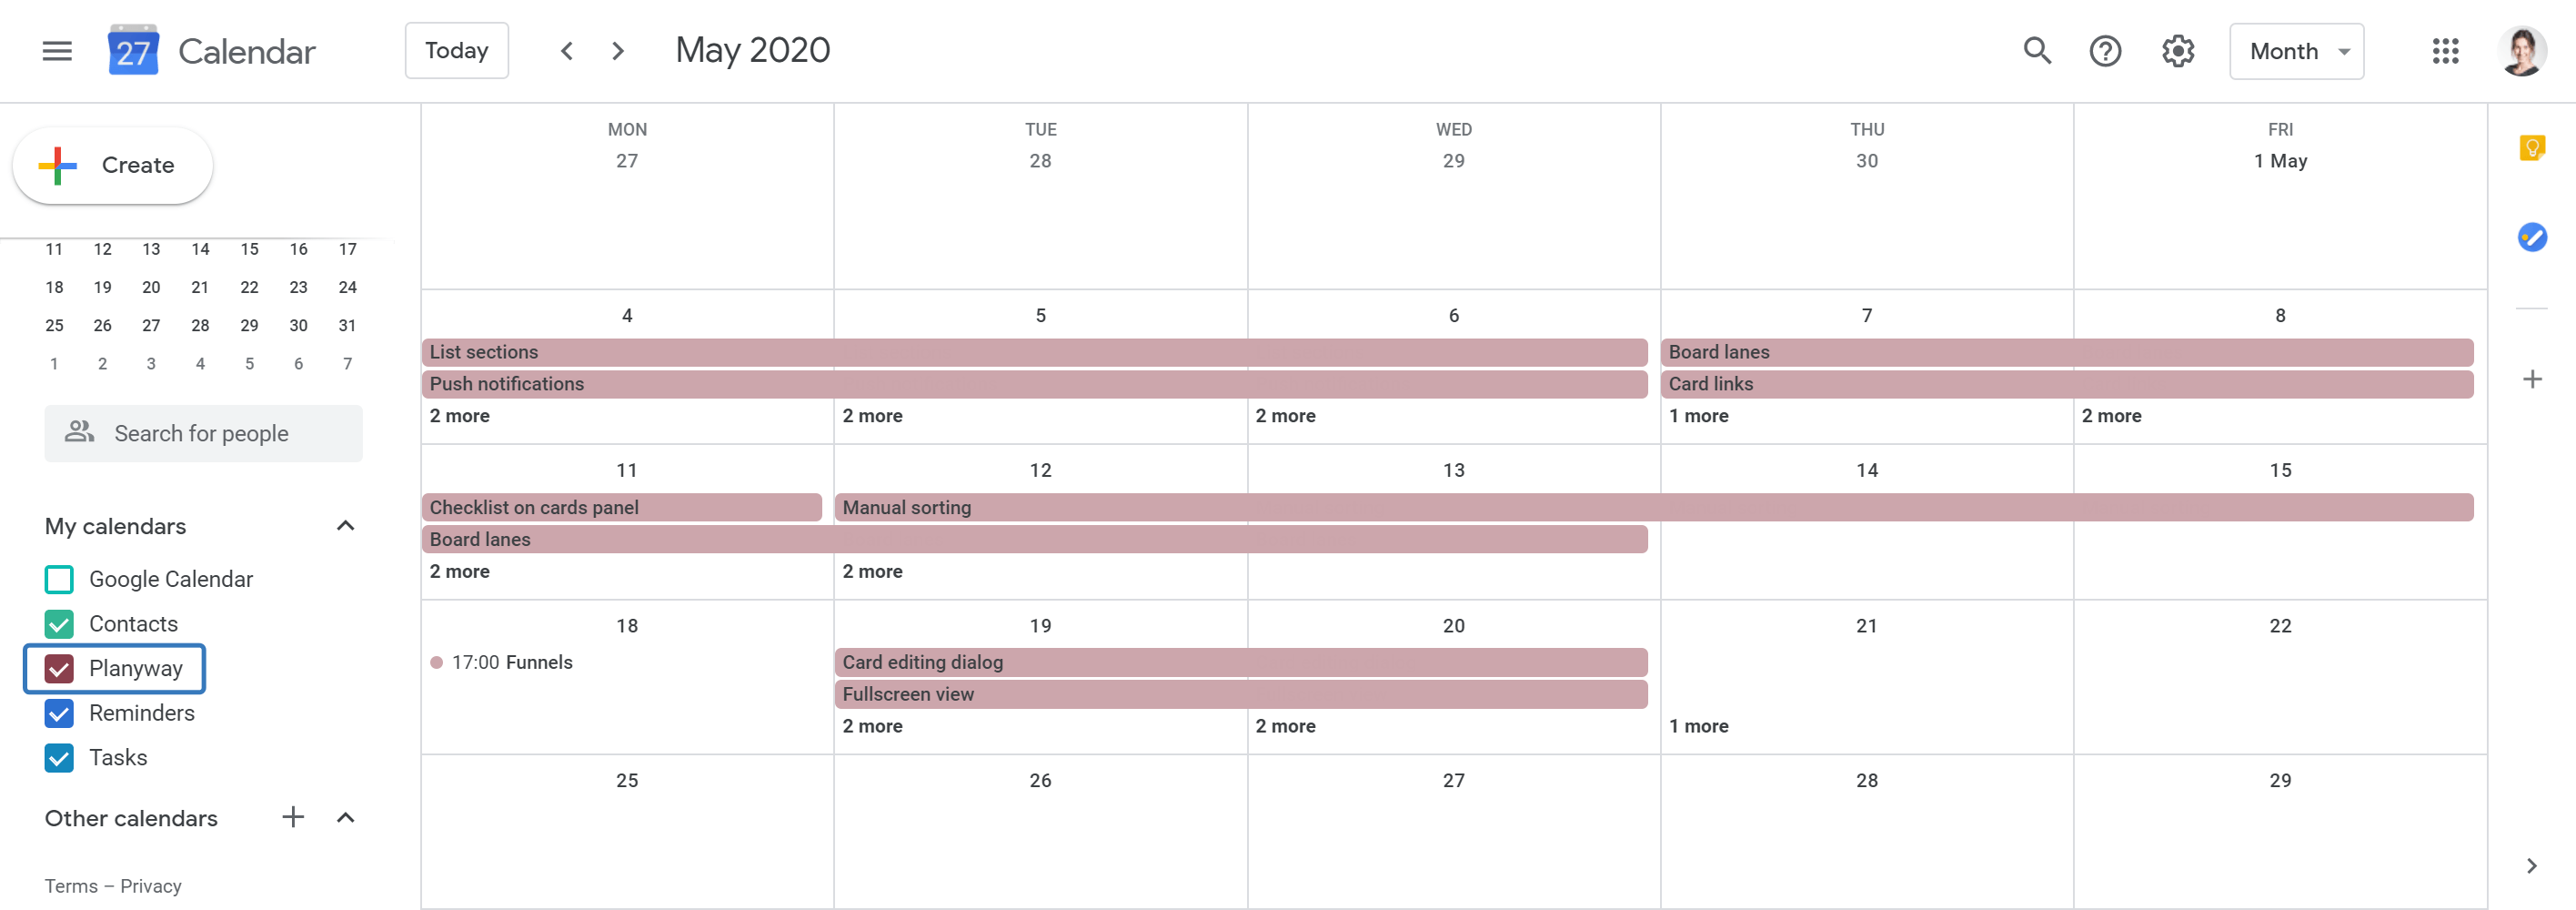 Planyway Getting Started Created Calendar